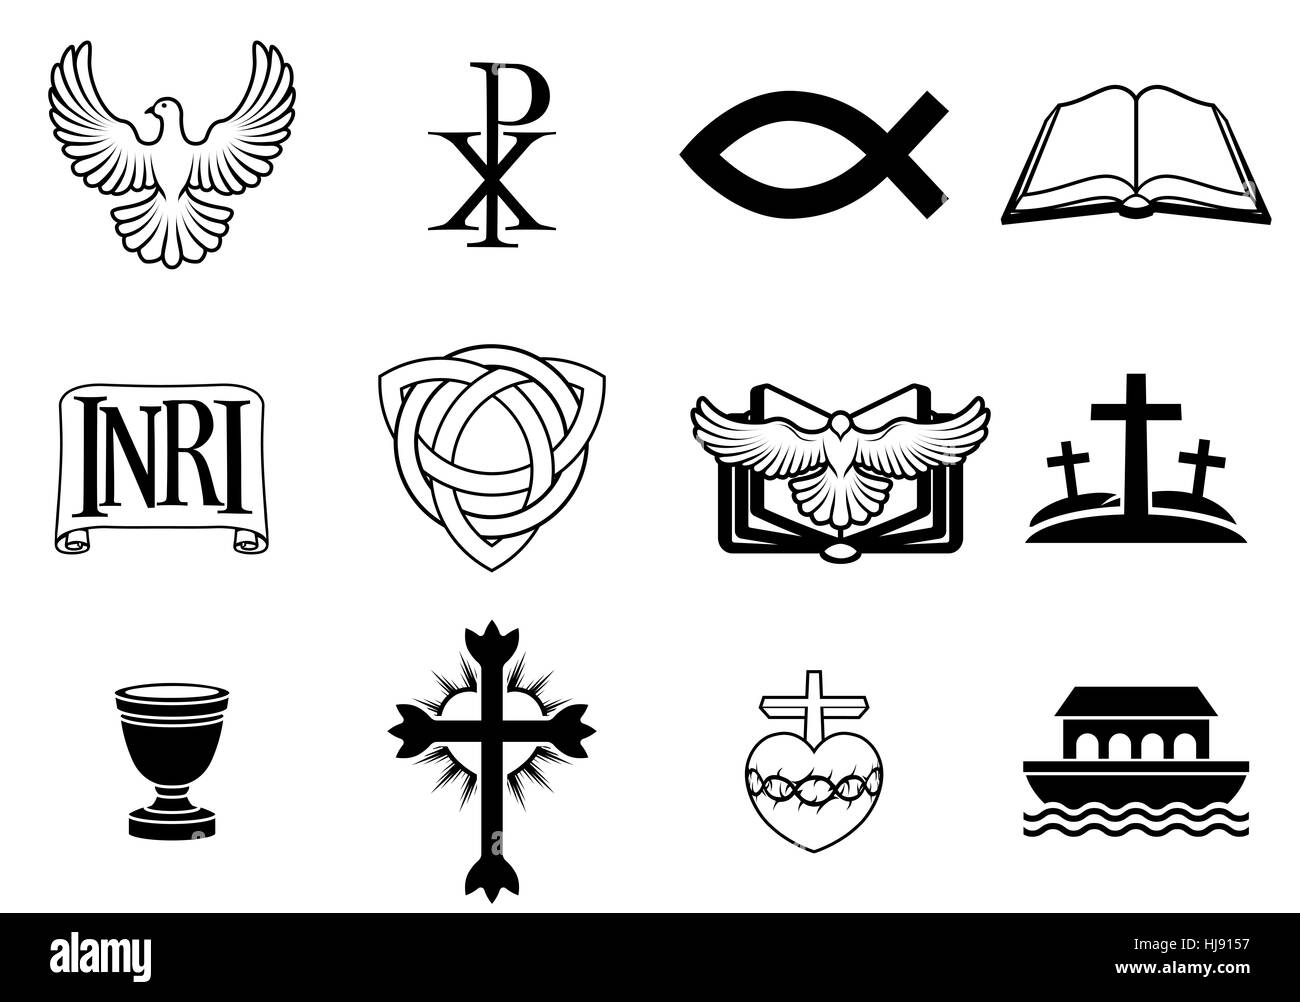 Christian symbols meanings image collections symbol and sign ideas the dove in christianity dove symbol dove symbolism meaning a set of christian icons and symbols buycottarizona